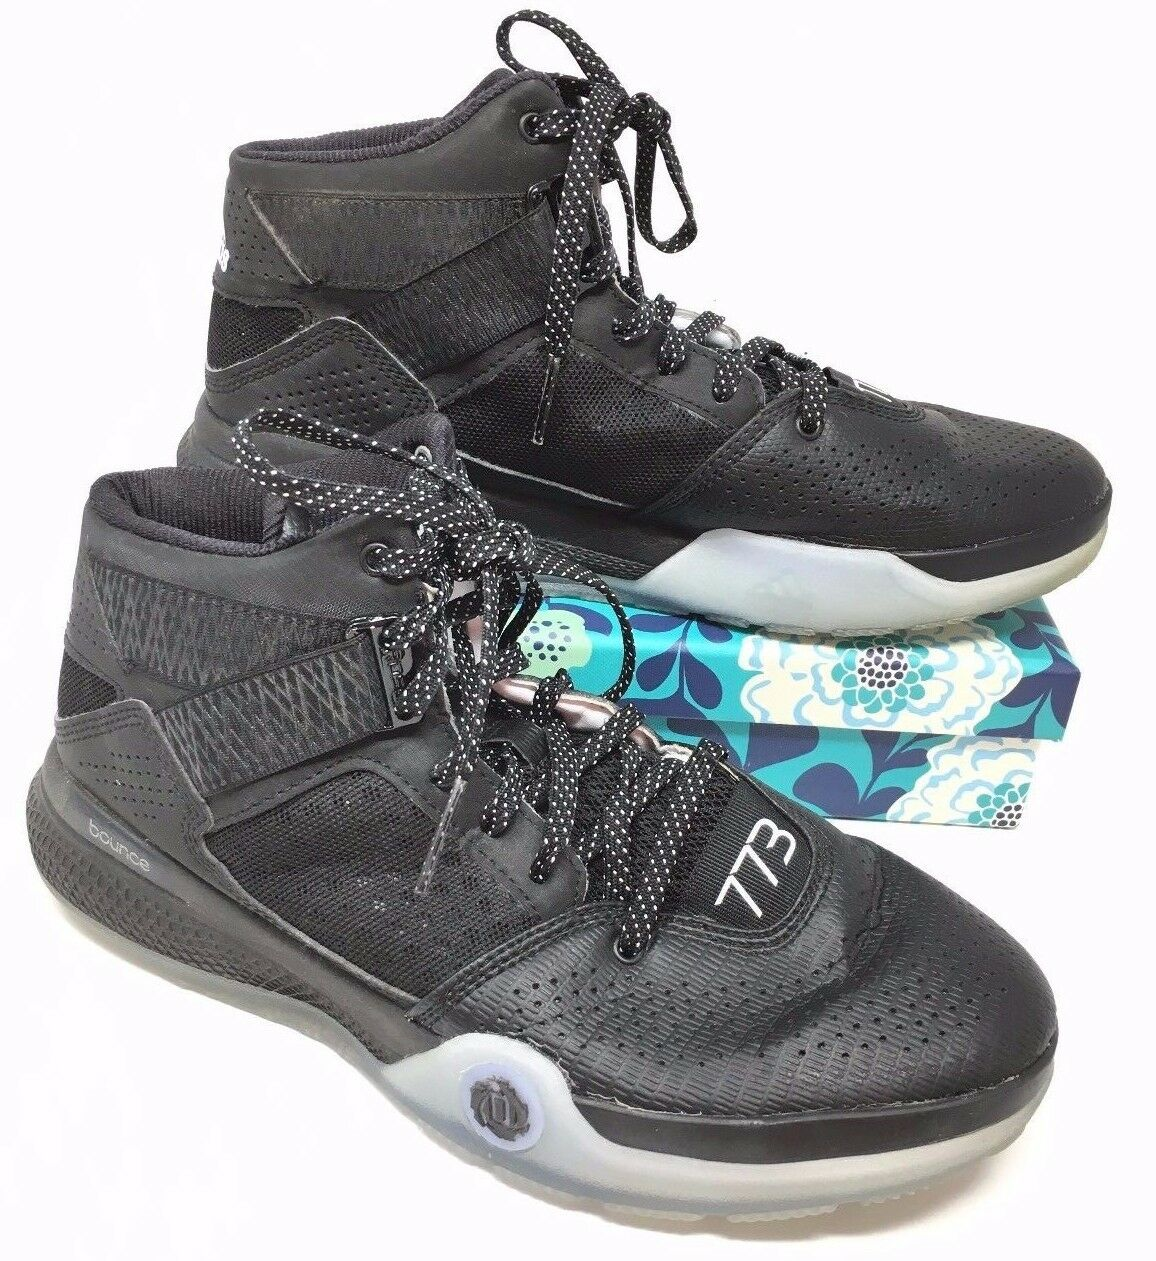 5293a13a84a Men s Adidas Derrick Rose 773 IV IV IV Size 7 Sneakers Shoes Basketball  Black White M8